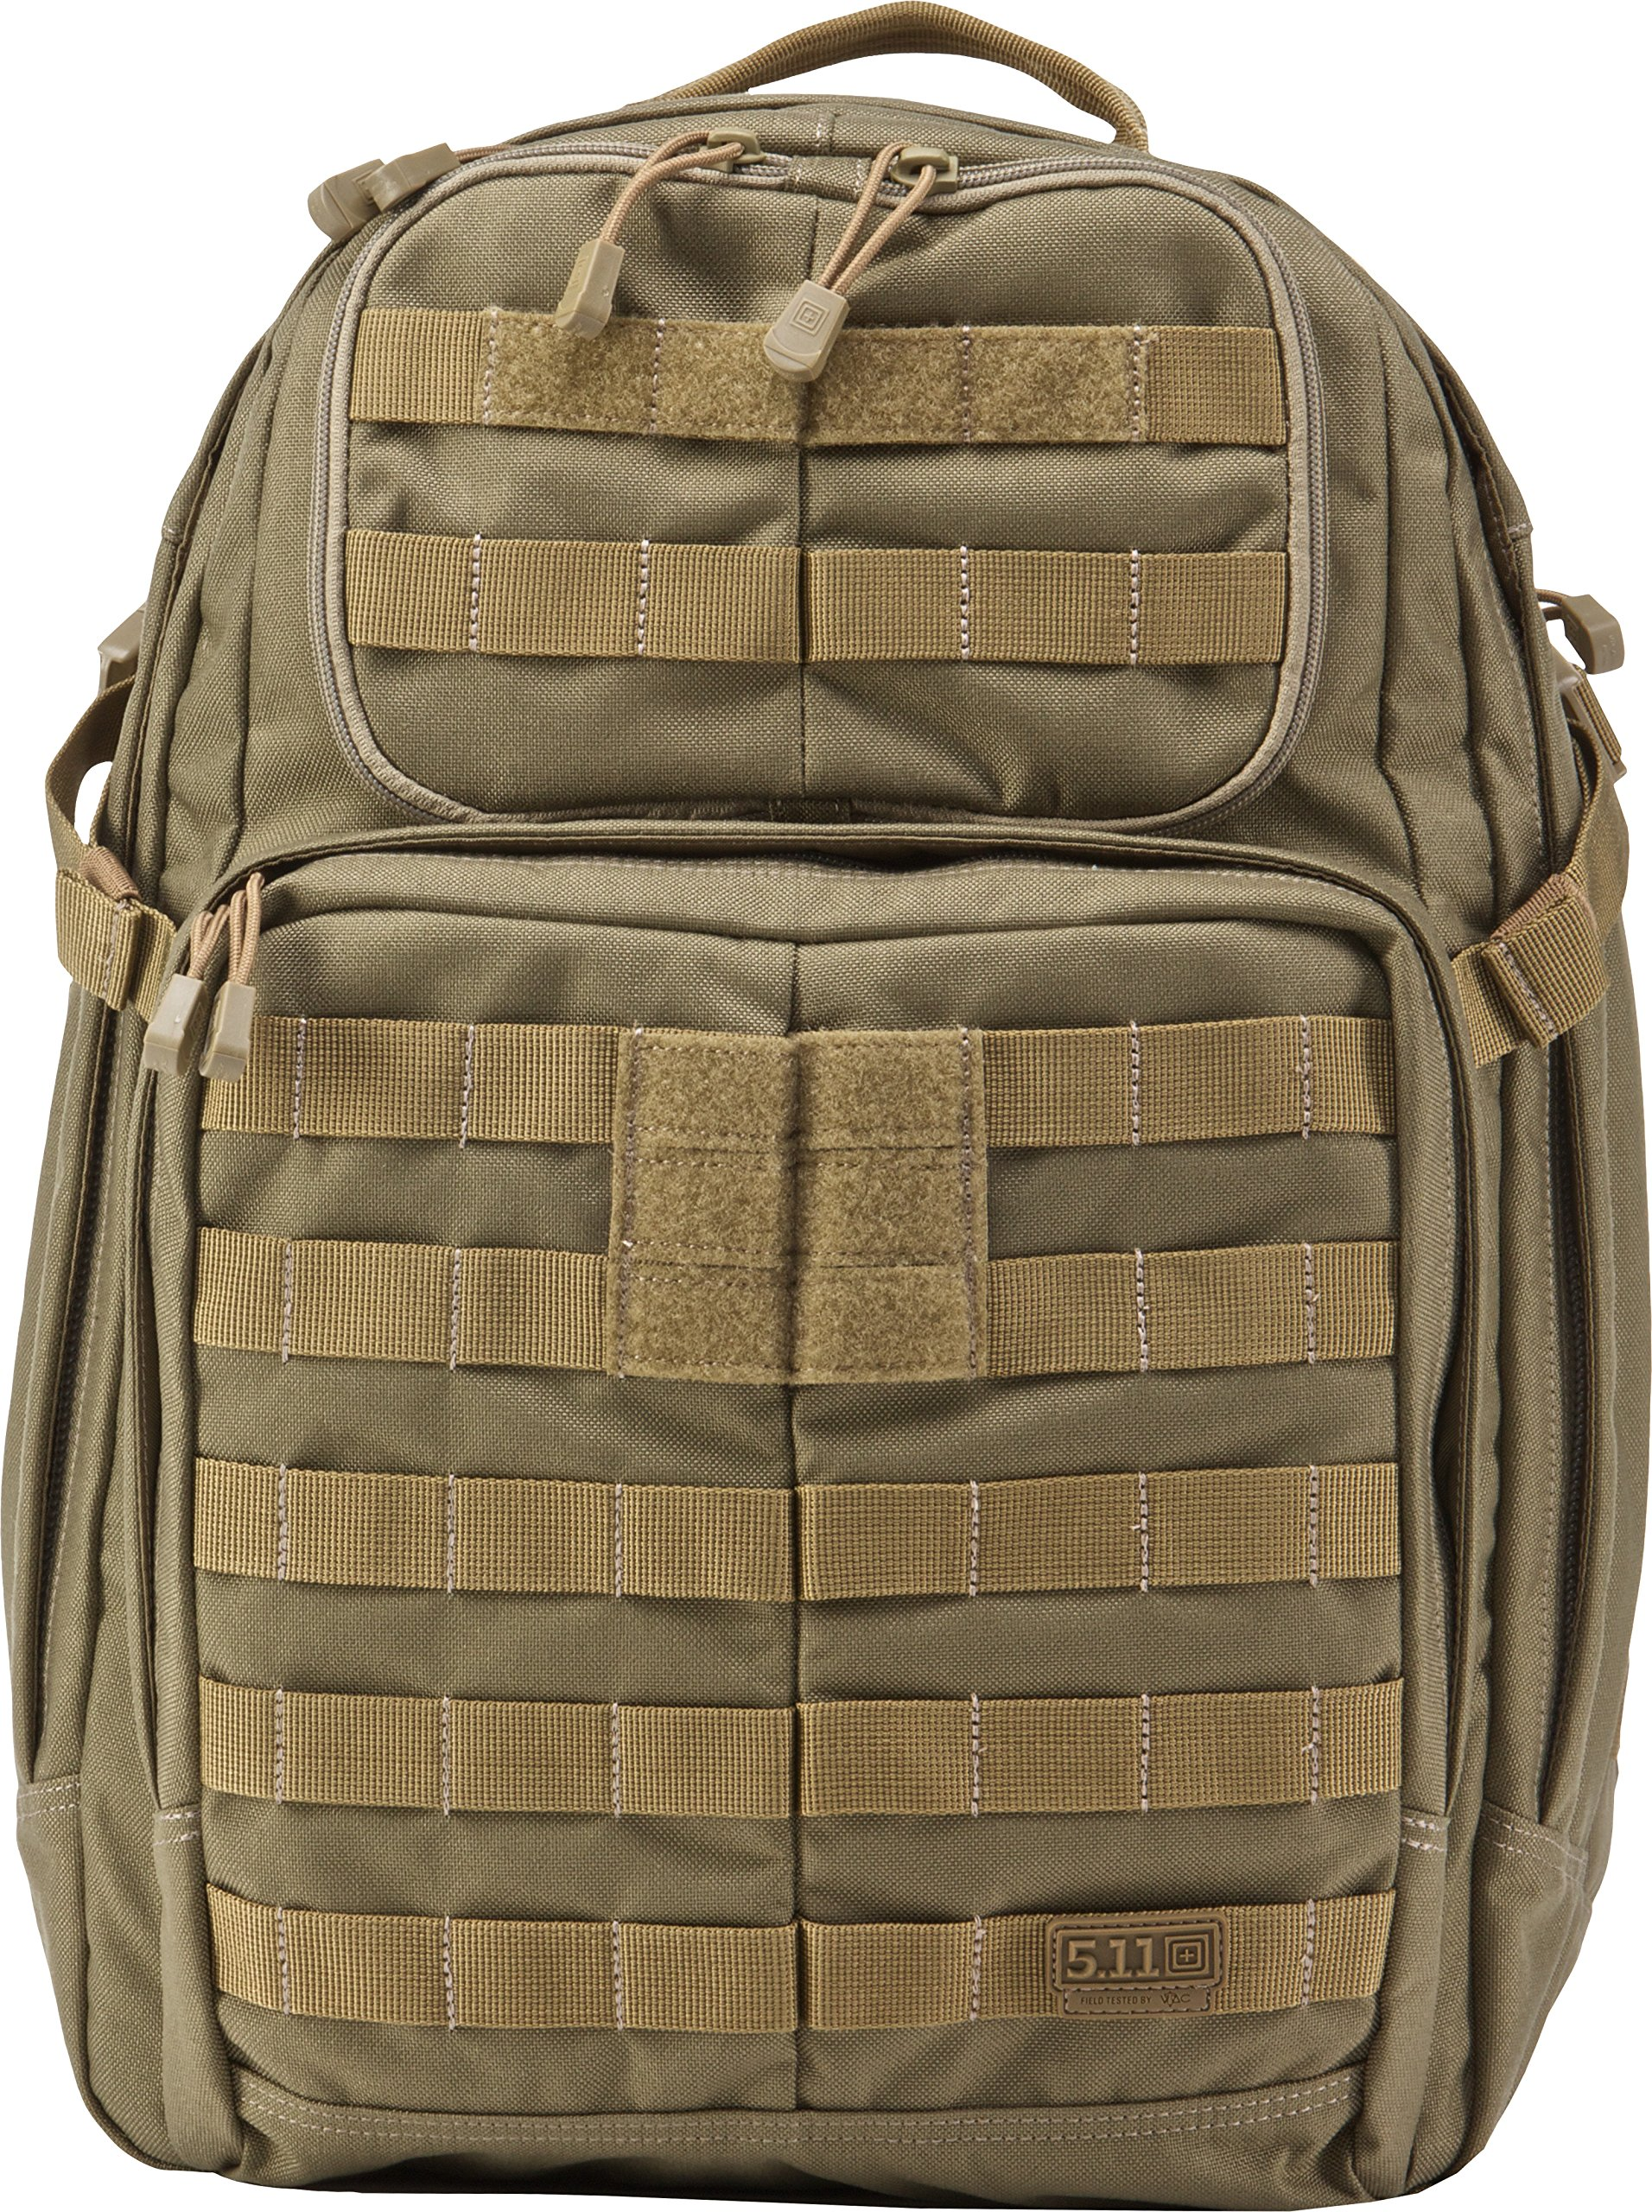 Best Rated In Tactical Bags Packs Helpful Customer Reviews Sarung Hp Pounch Army 511 Rush24 Backpack For Military Bug Out Bag Medium Style 58601 Product